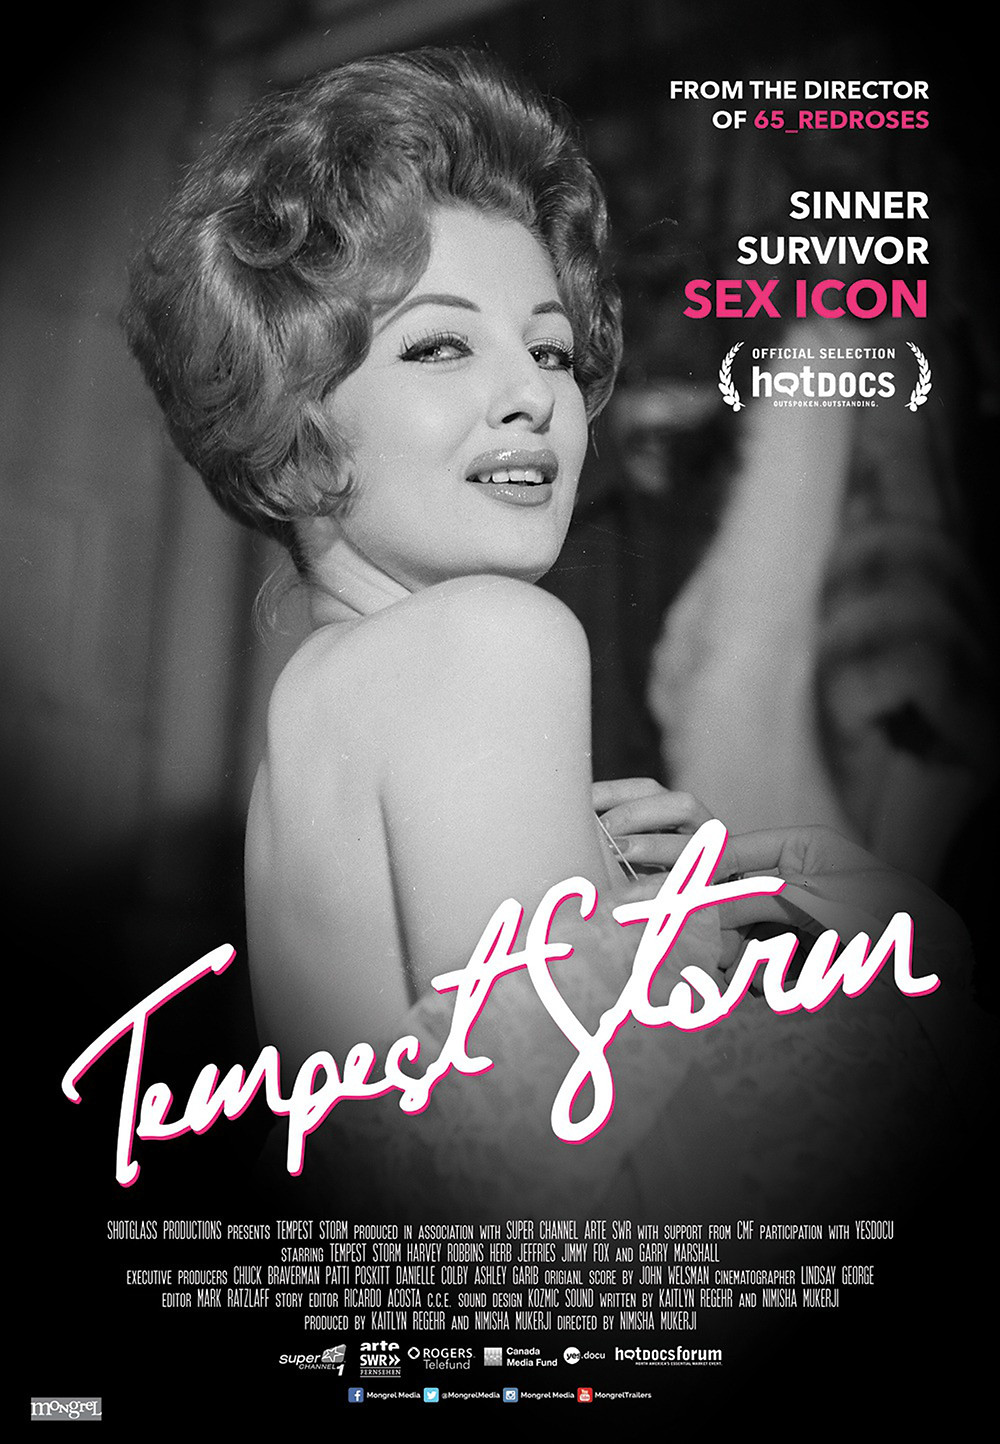 Tempest Storm - The Documentary